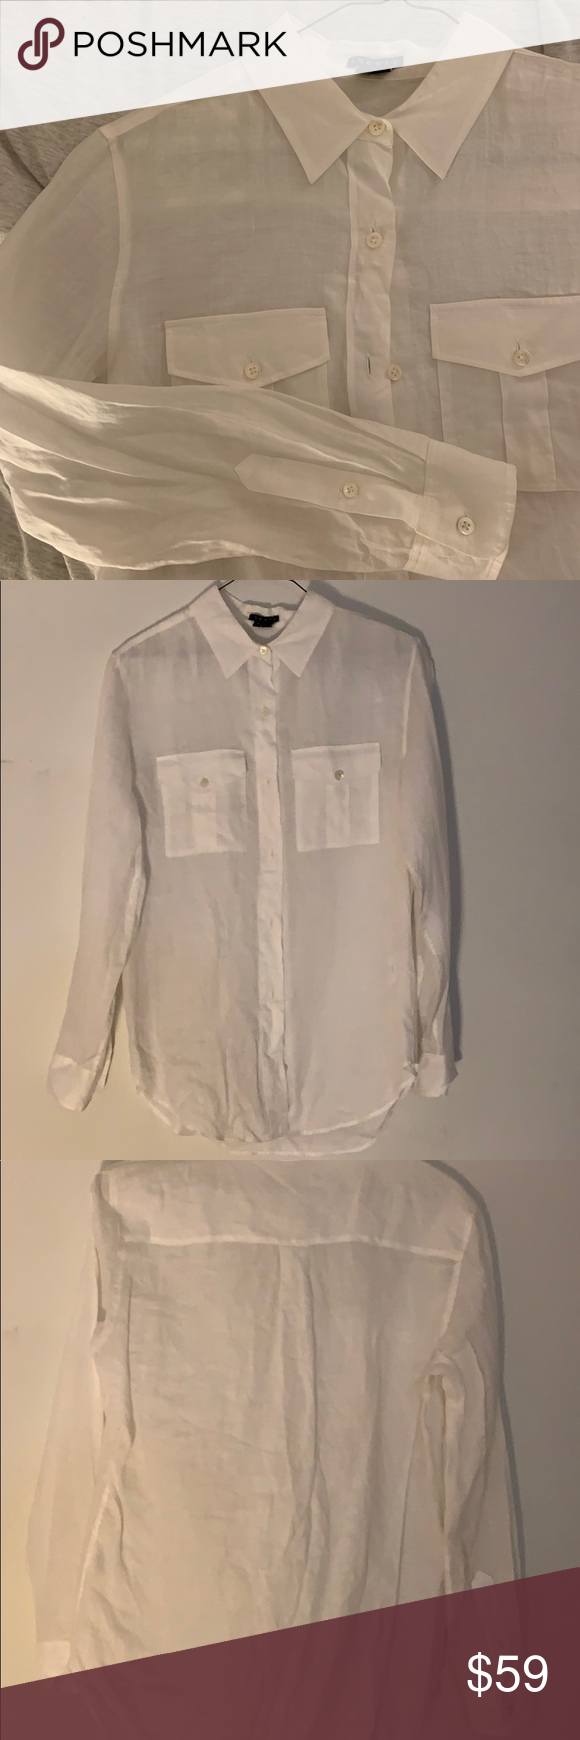 78ffddf7 Theory Essential Women's Linen Button Down Shirt Brand new without tags  (just wrinkled from storage) Theory Essential White Linen Button Down Shirt  Size ...